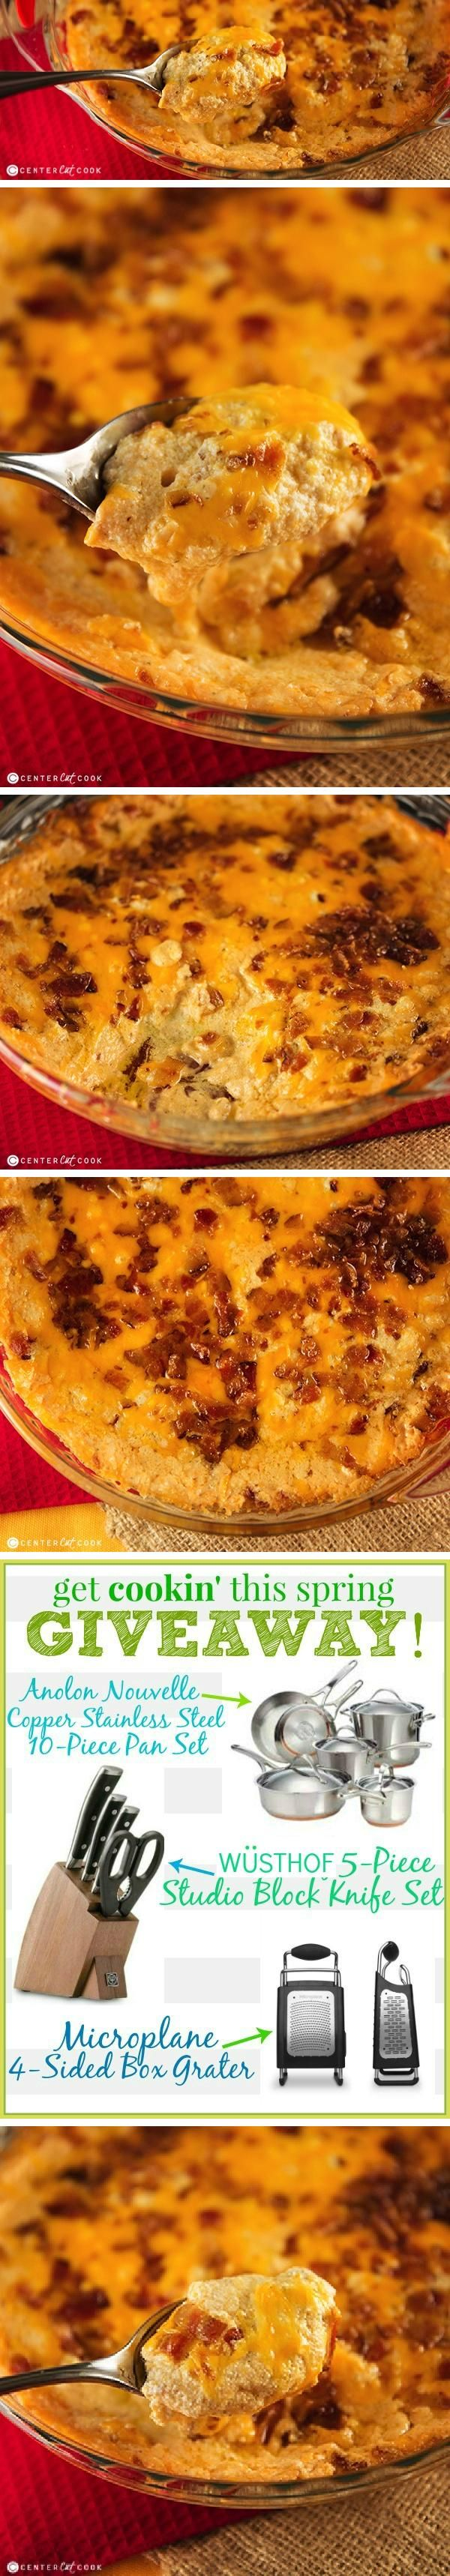 BACON CHEDDAR DIP: Extra sharp cheddar cheese is combined with lots of bacon, cream cheese, sour cream, mayonnaise and just the right seasonings. Then it's topped with more bacon and cheddar cheese, and baked until warm and bubbly.